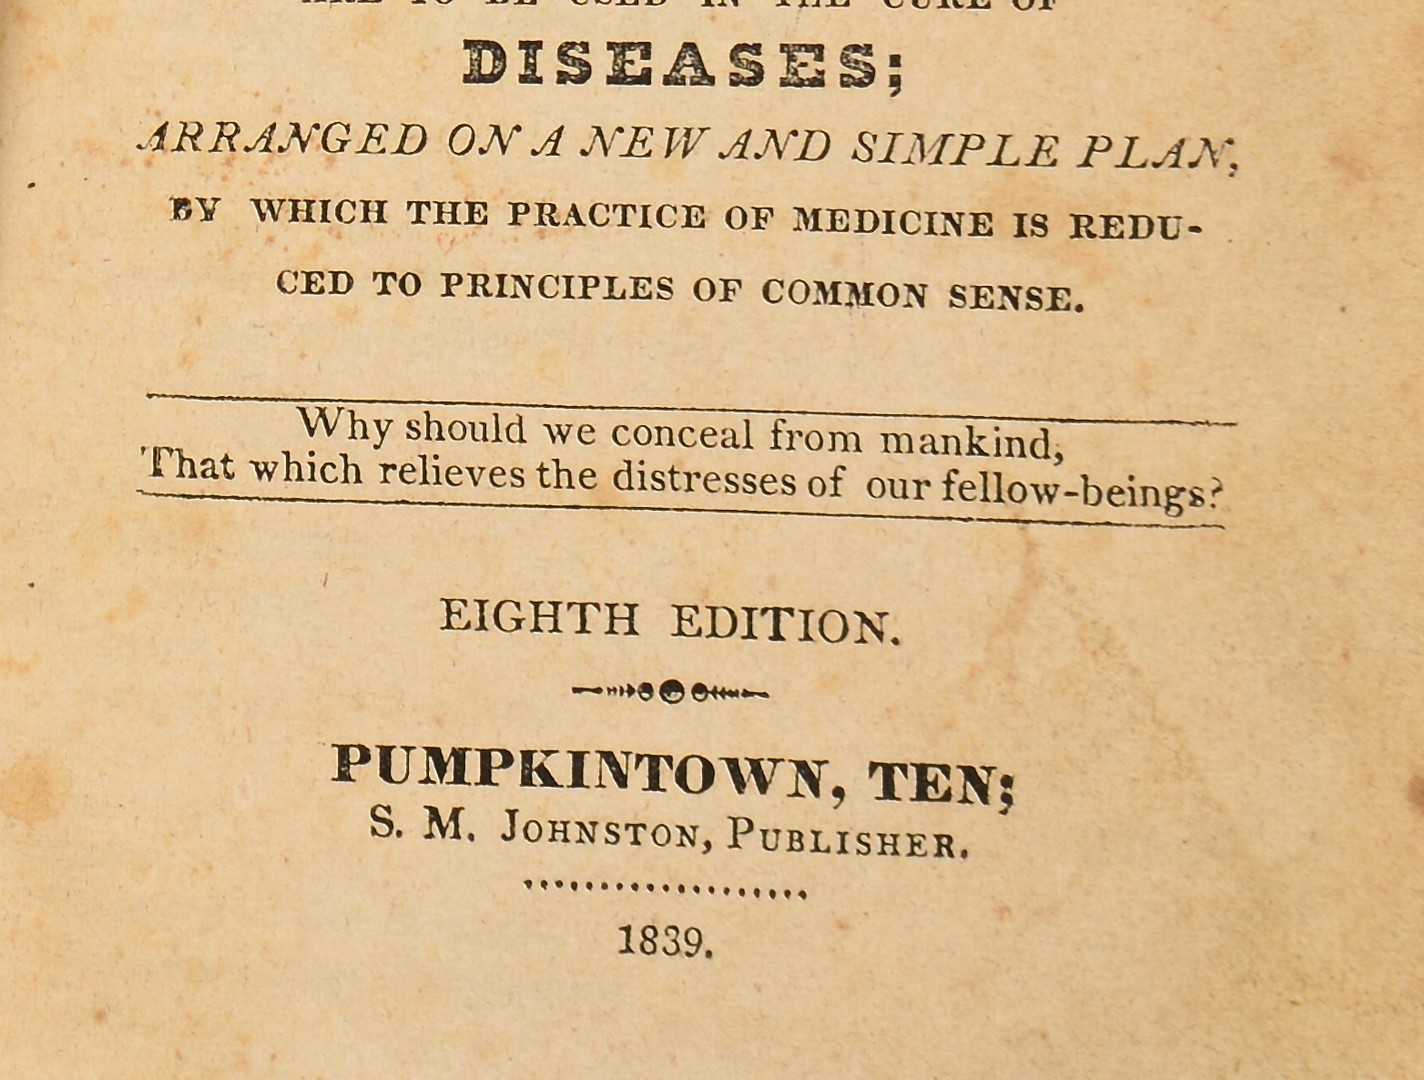 Lot 251: Gunns Domestic Medicine, Pumpkintown 1839